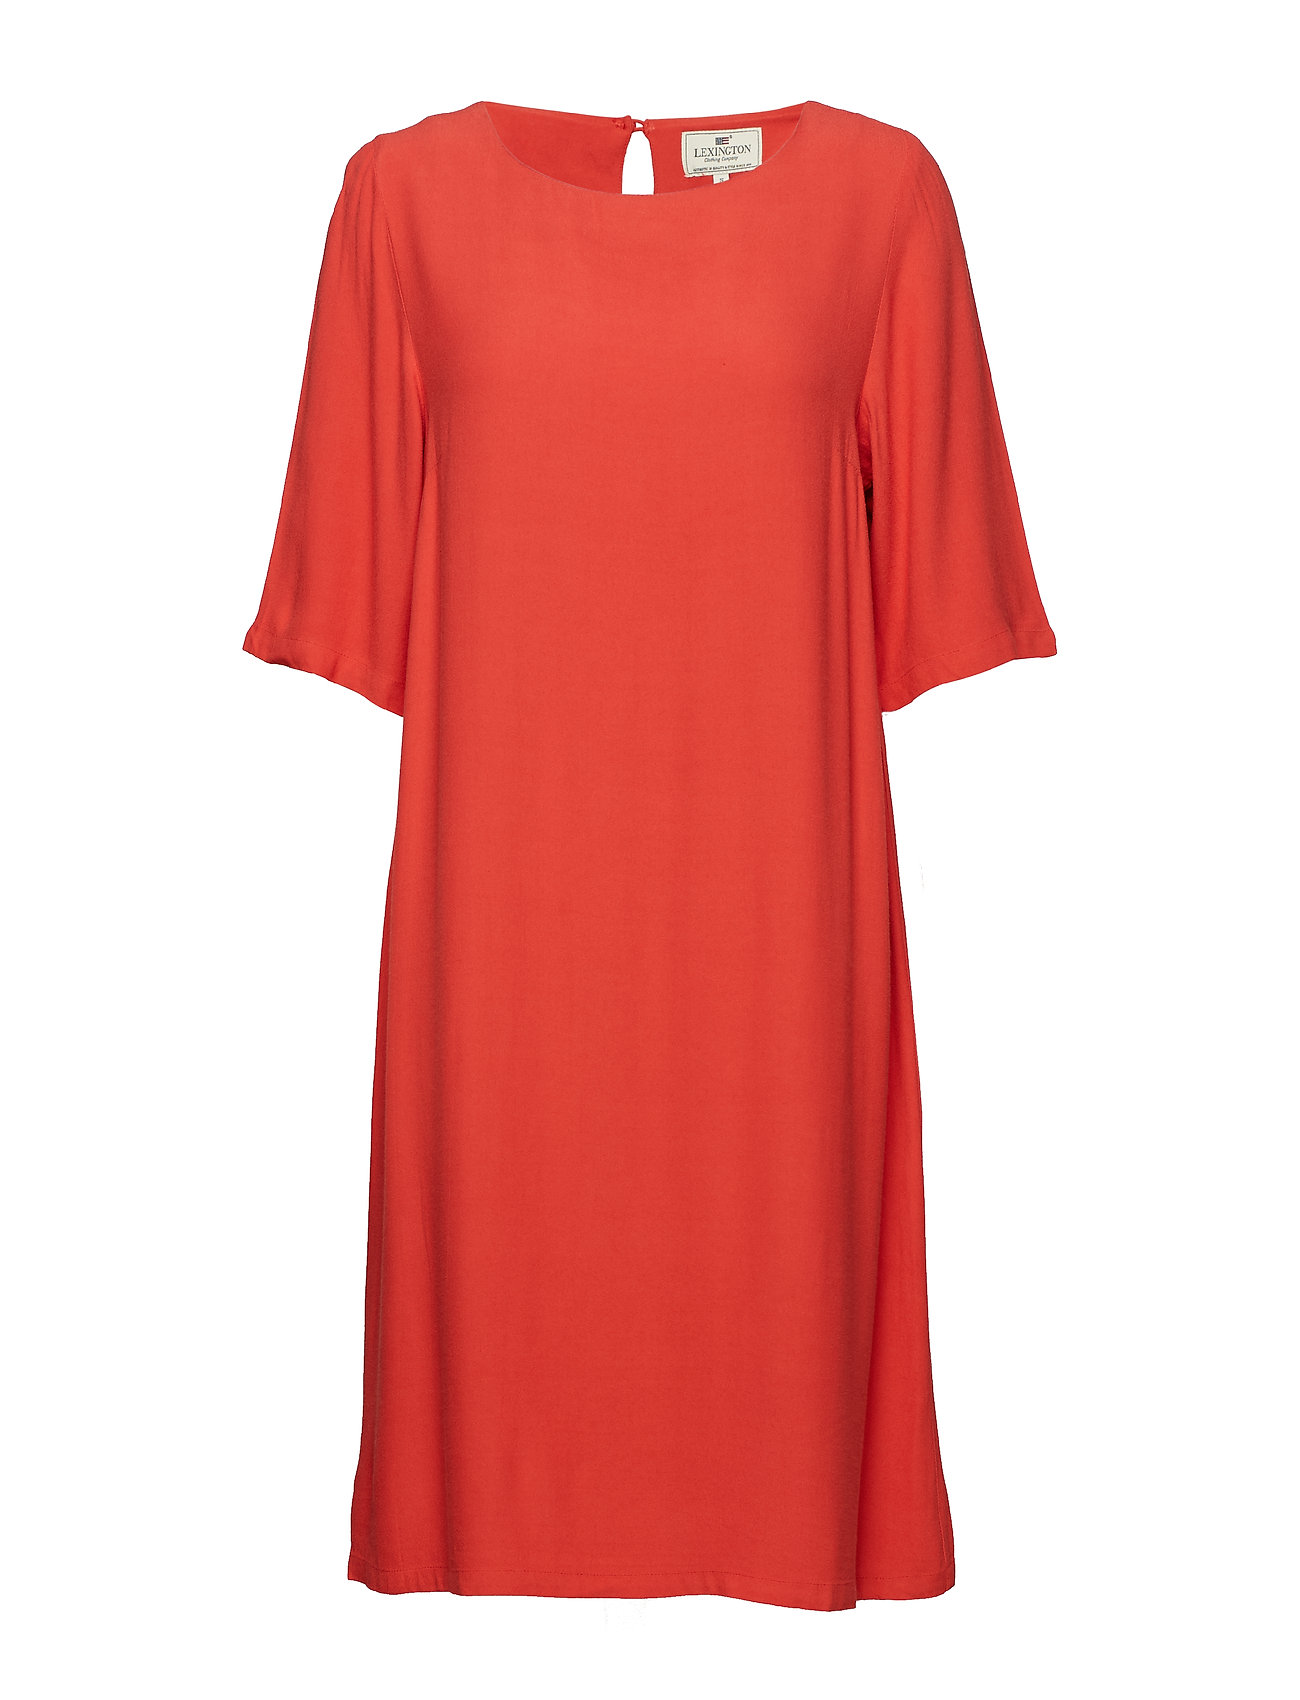 Lexington Clothing Thea Dress - VINTAGE RED